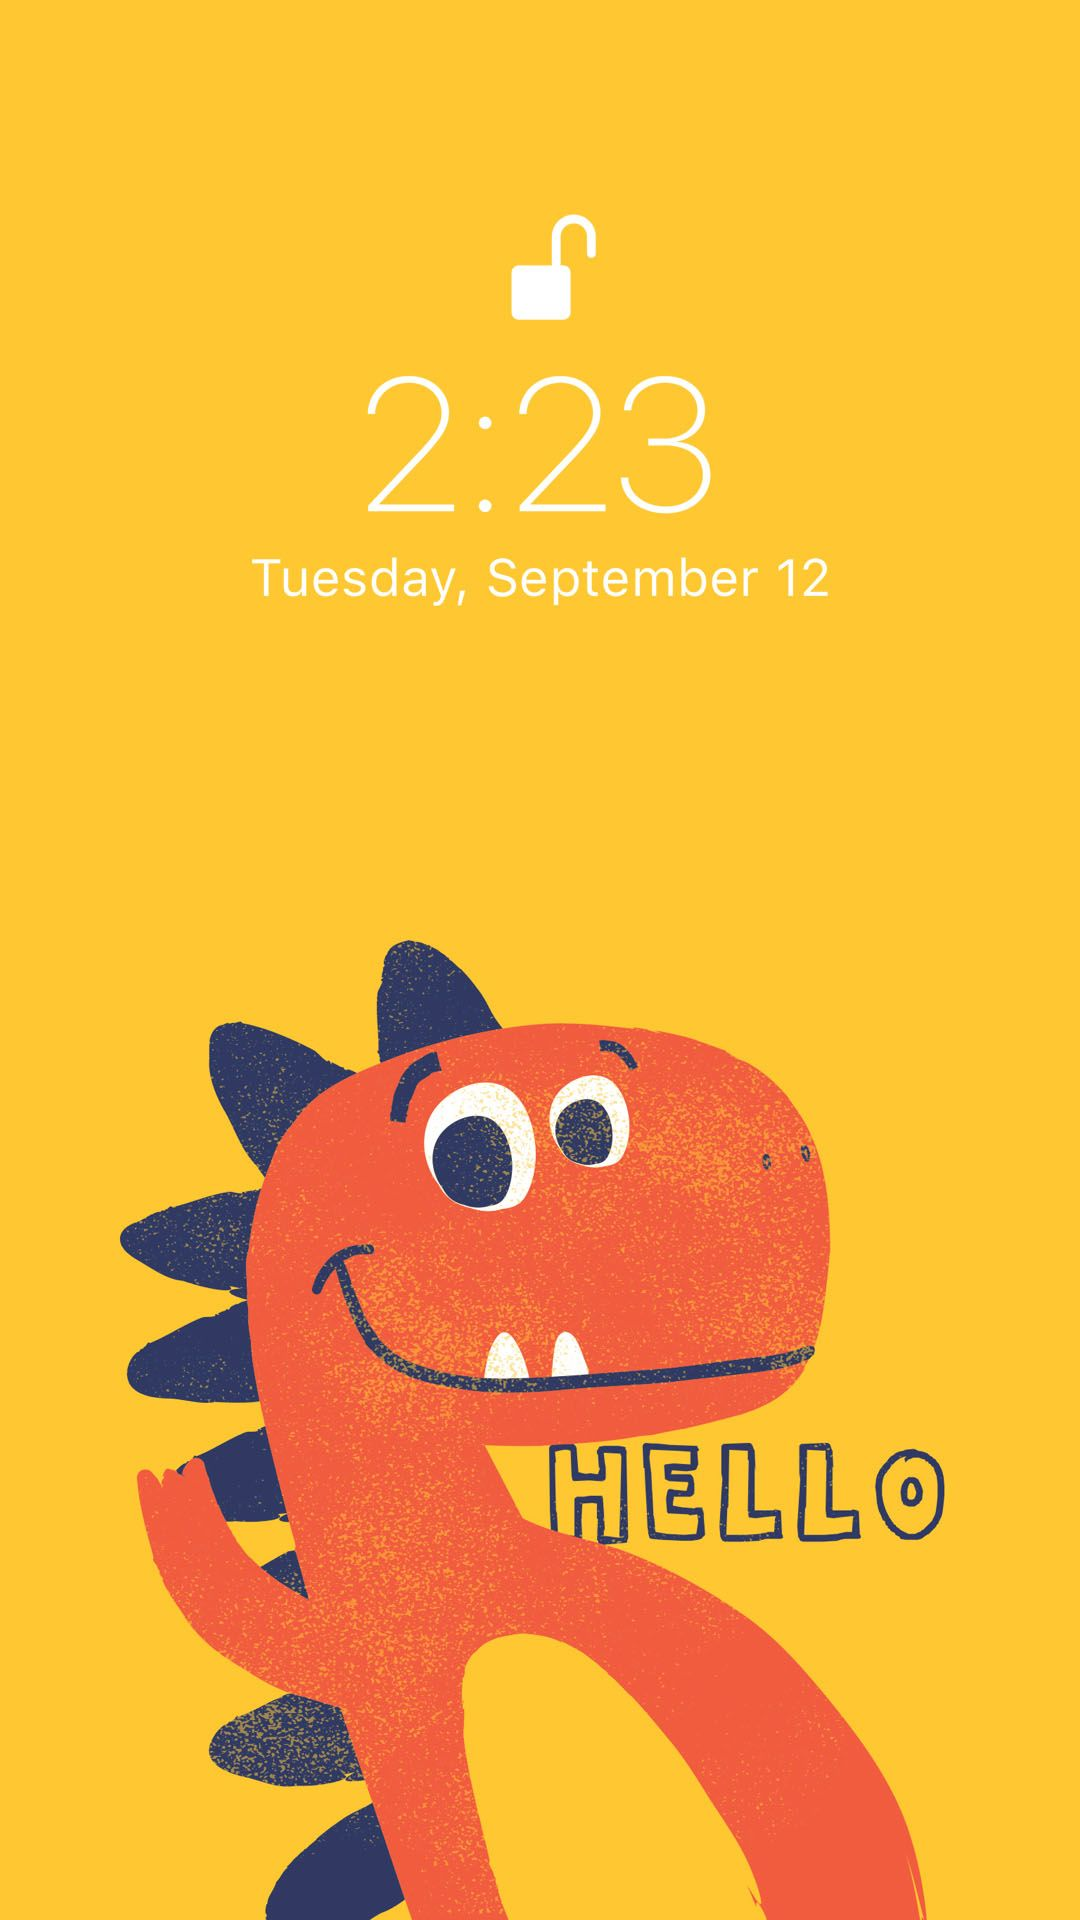 Dino Wallpaper For Your Iphone Xs From Vibe App Wallpaperiphone Walpapers Dinosaur Dino Funny Wallpaper Dinosaur Wallpaper Wallpaper Iphone Cute